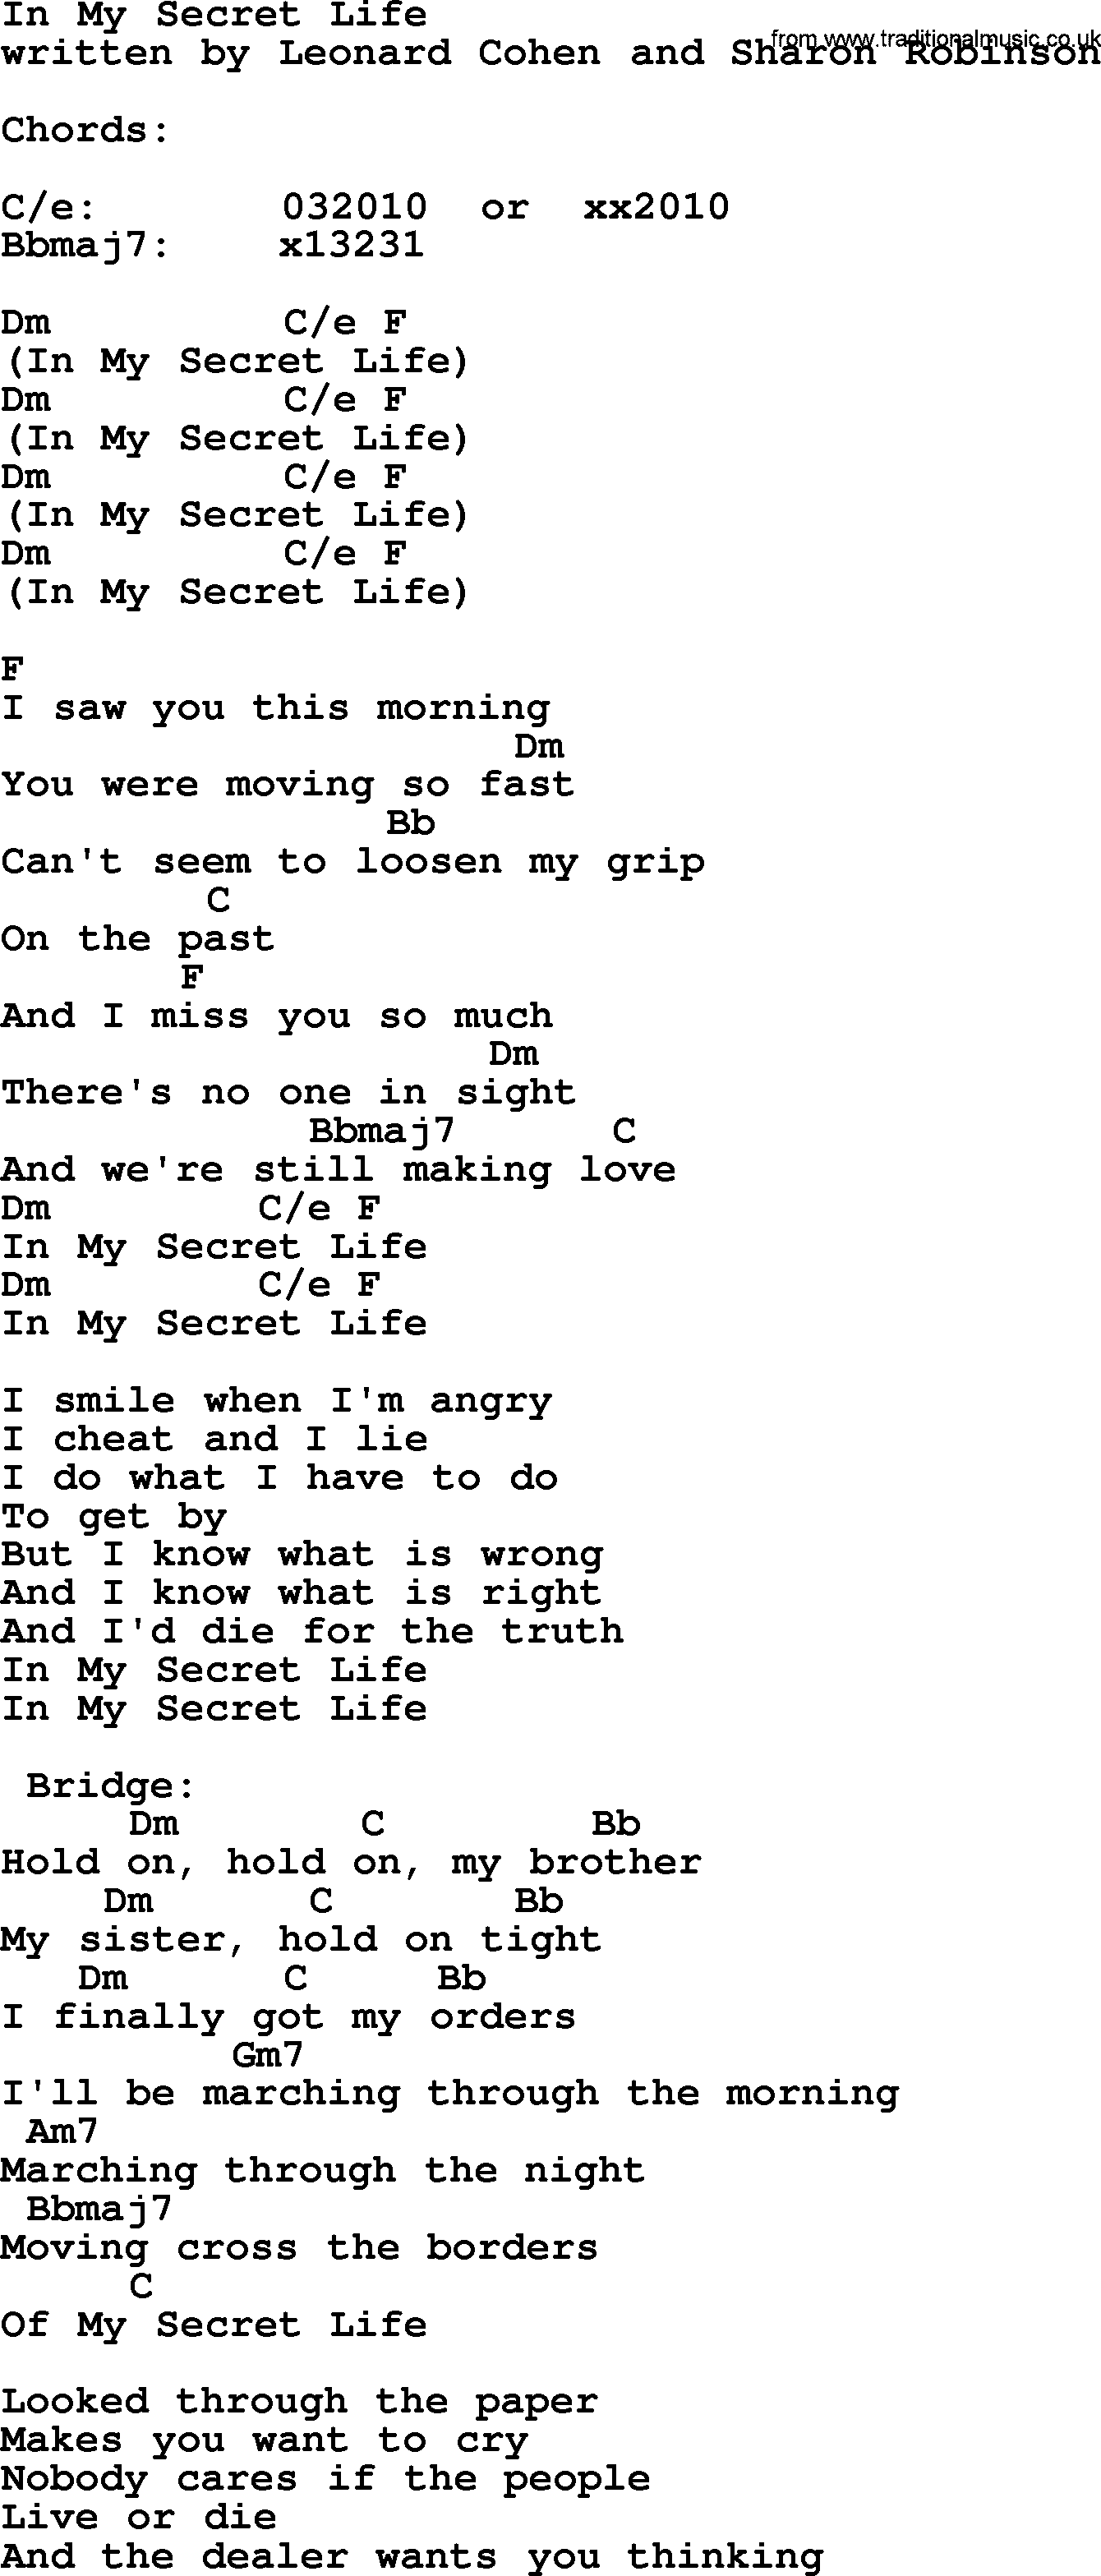 Leonard cohen song in my secret life lyrics and chords leonard cohen song in my secret life lyrics and chords hexwebz Images